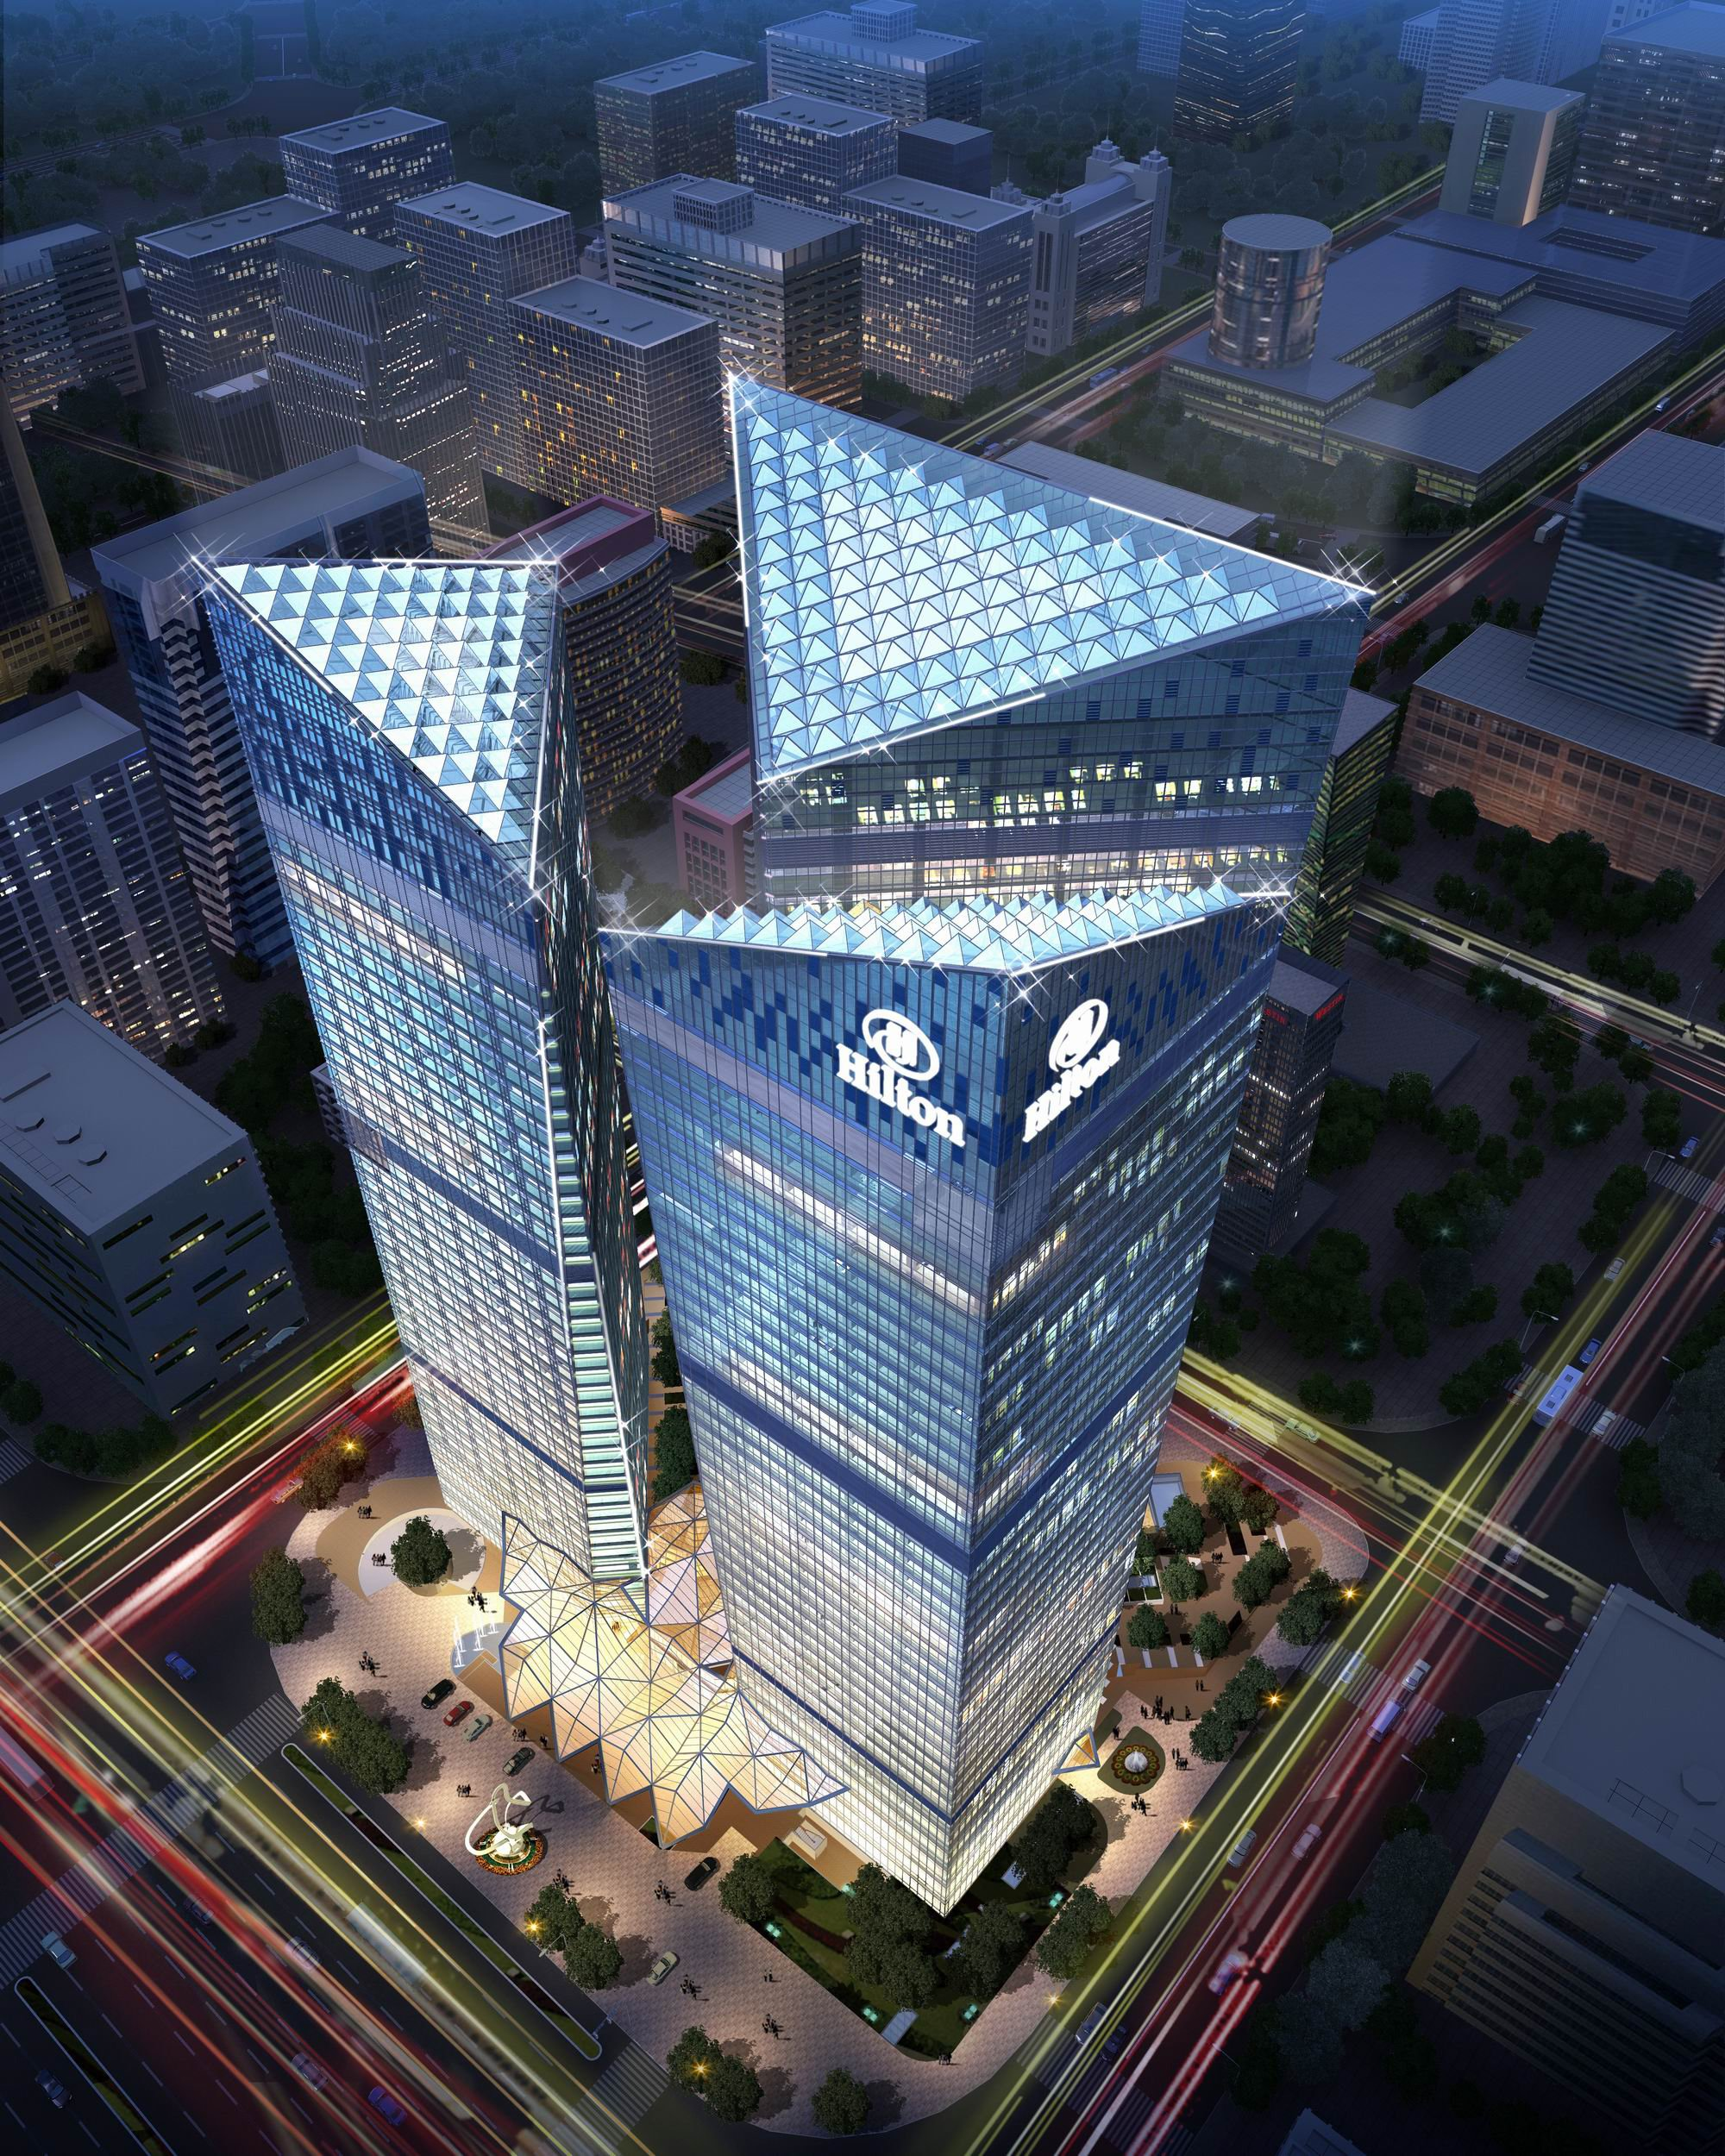 Hilton Hotels Company: Hilton Worldwide Opens First Of 11 Pipeline Hotels In